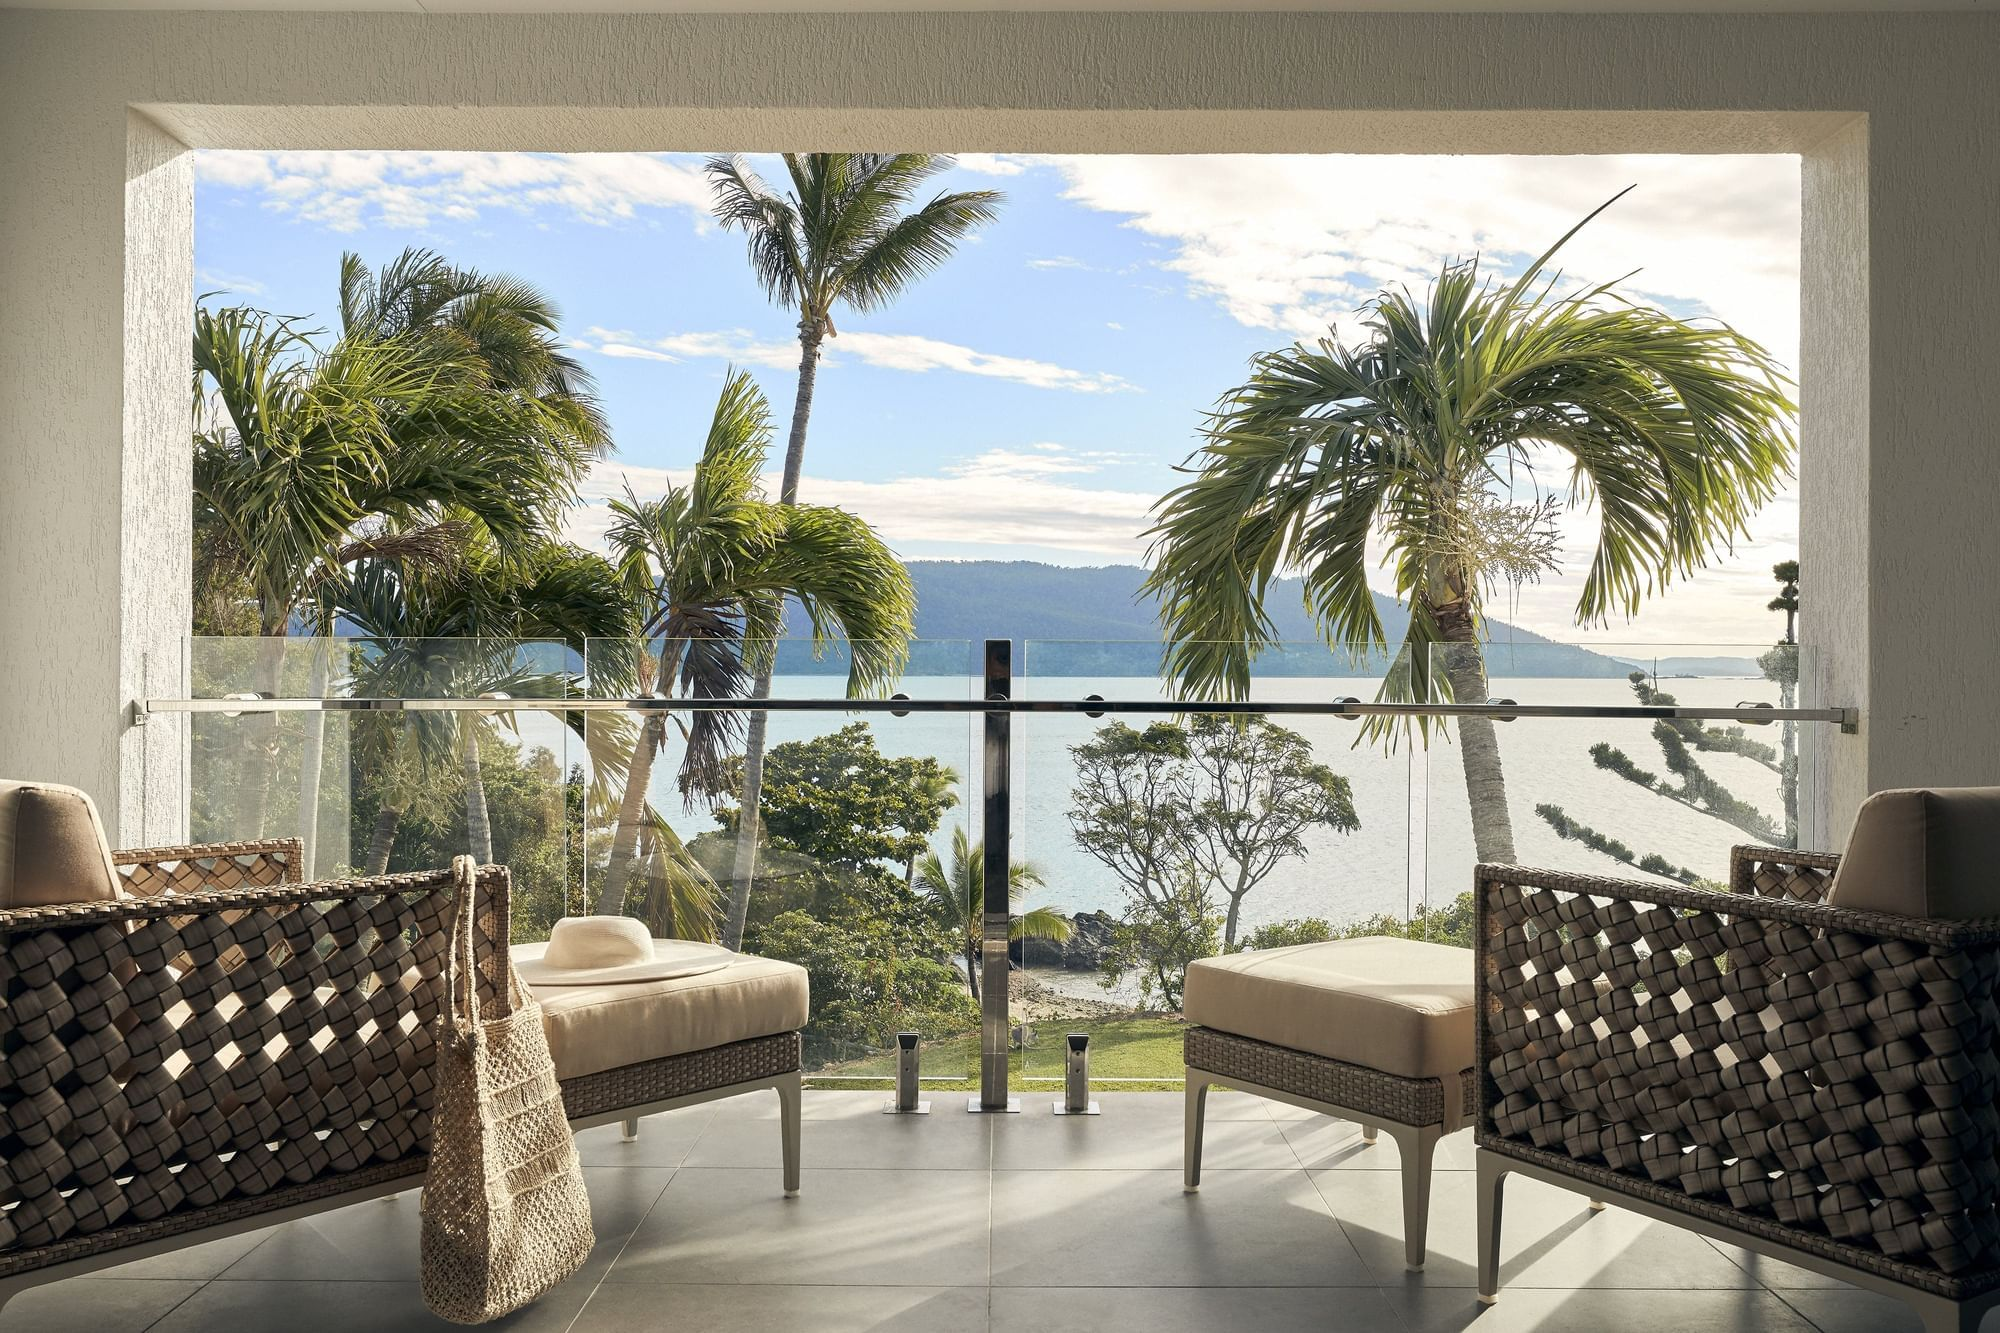 Terrace with sea view in room at Daydream Island Resort